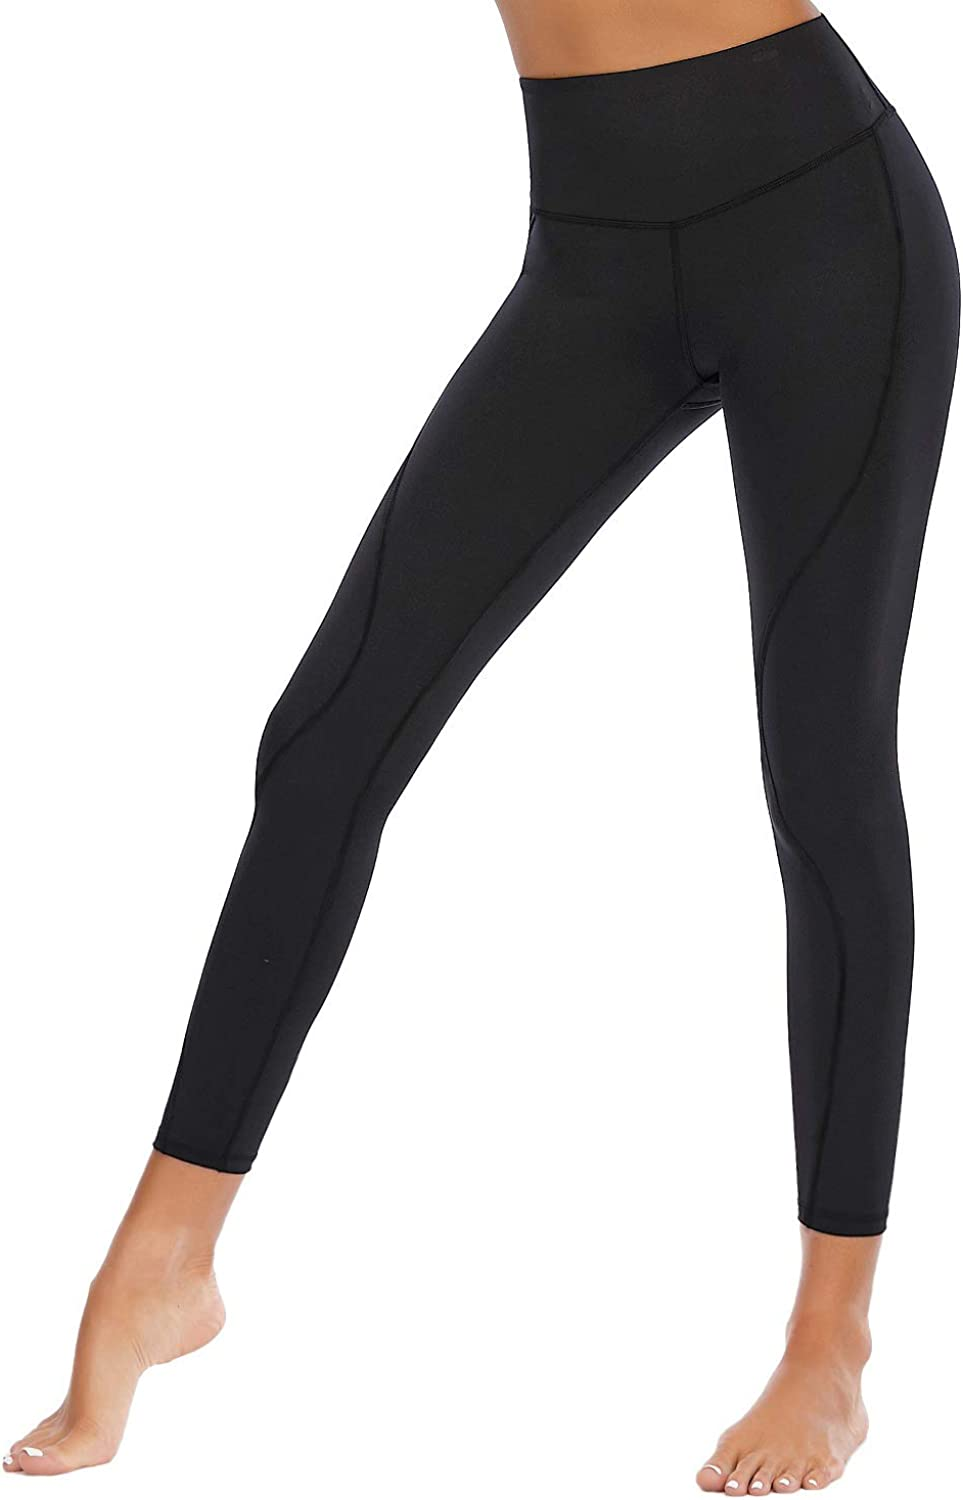 CSTOWN Workout Leggings for Women Tummy Control High Waisted Yoga Pants 4-Way Stretch Running Pants